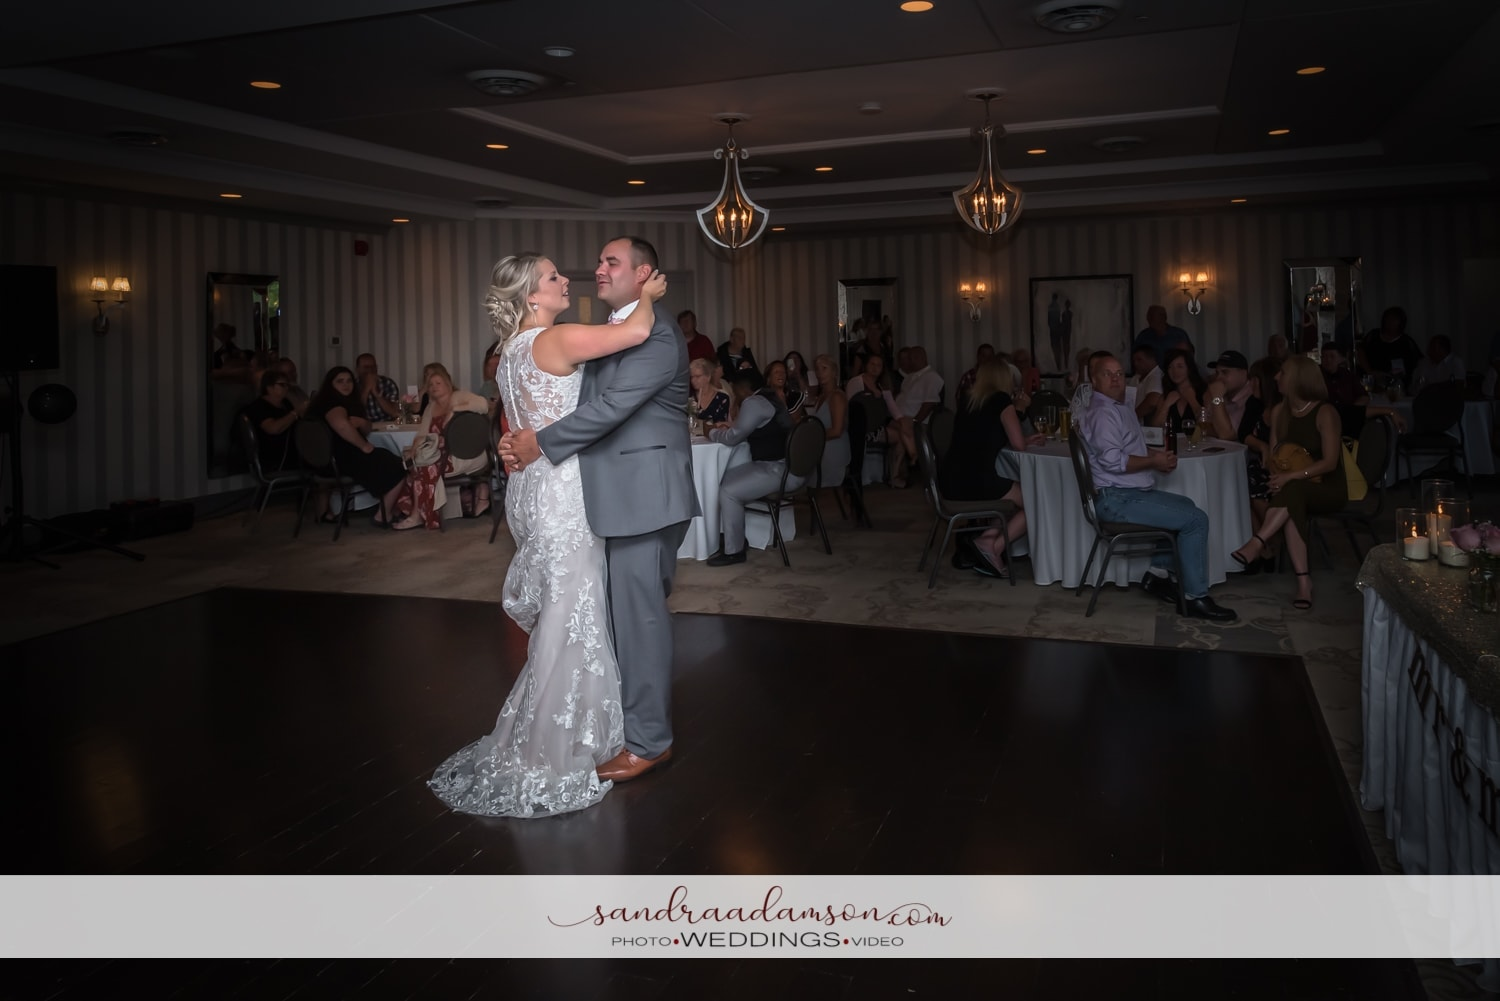 The bride and groom have their first dance together at the Ashburn Golf Club in Halifax, NS.